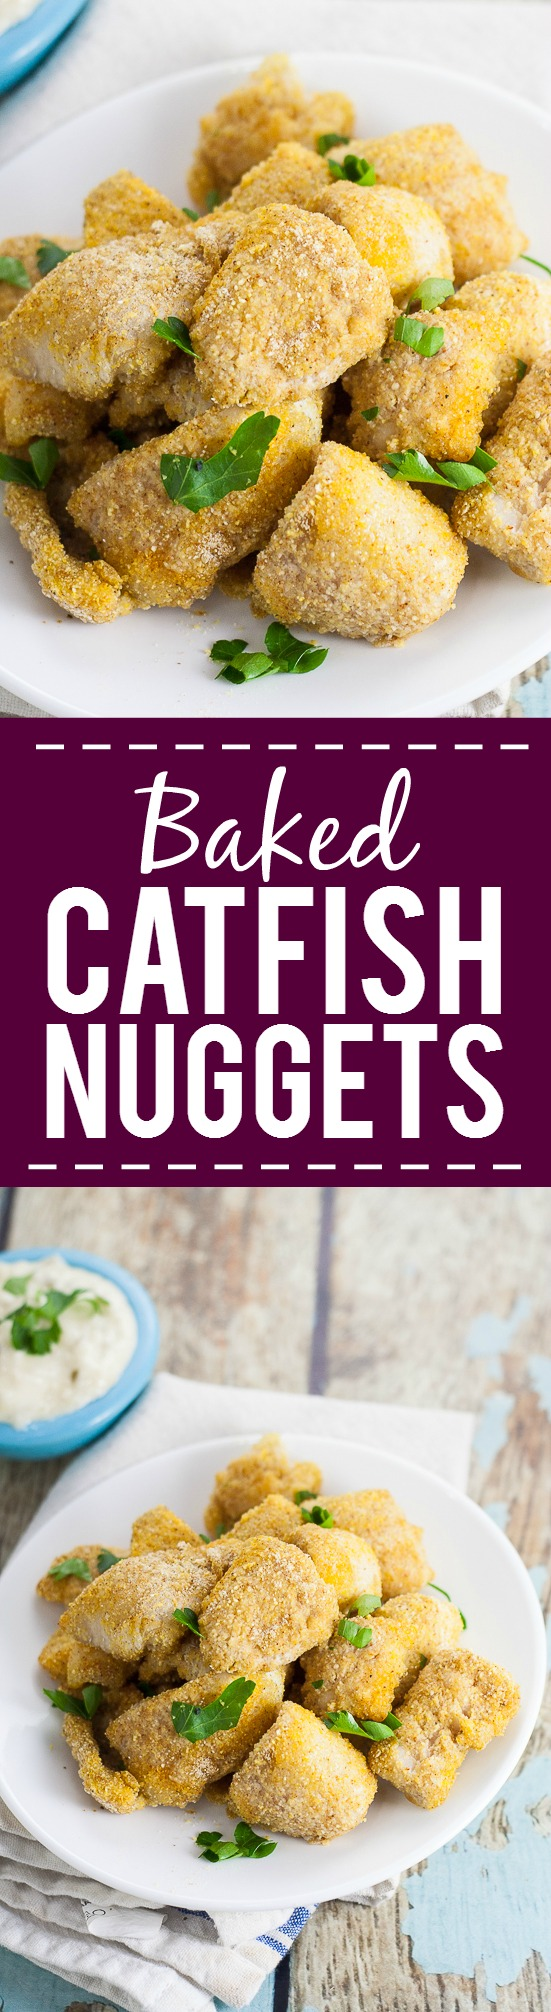 Baked Catfish Nuggets Recipe -Make these healthy, quick, and easy Baked Catfish Nuggets in just 30 minutes with 5 ingredients. Breaded with cornmeal and Cajun seasoning for a kick. Serve with your favorite sauce! So good! And such a quick and easy seafood recipe.